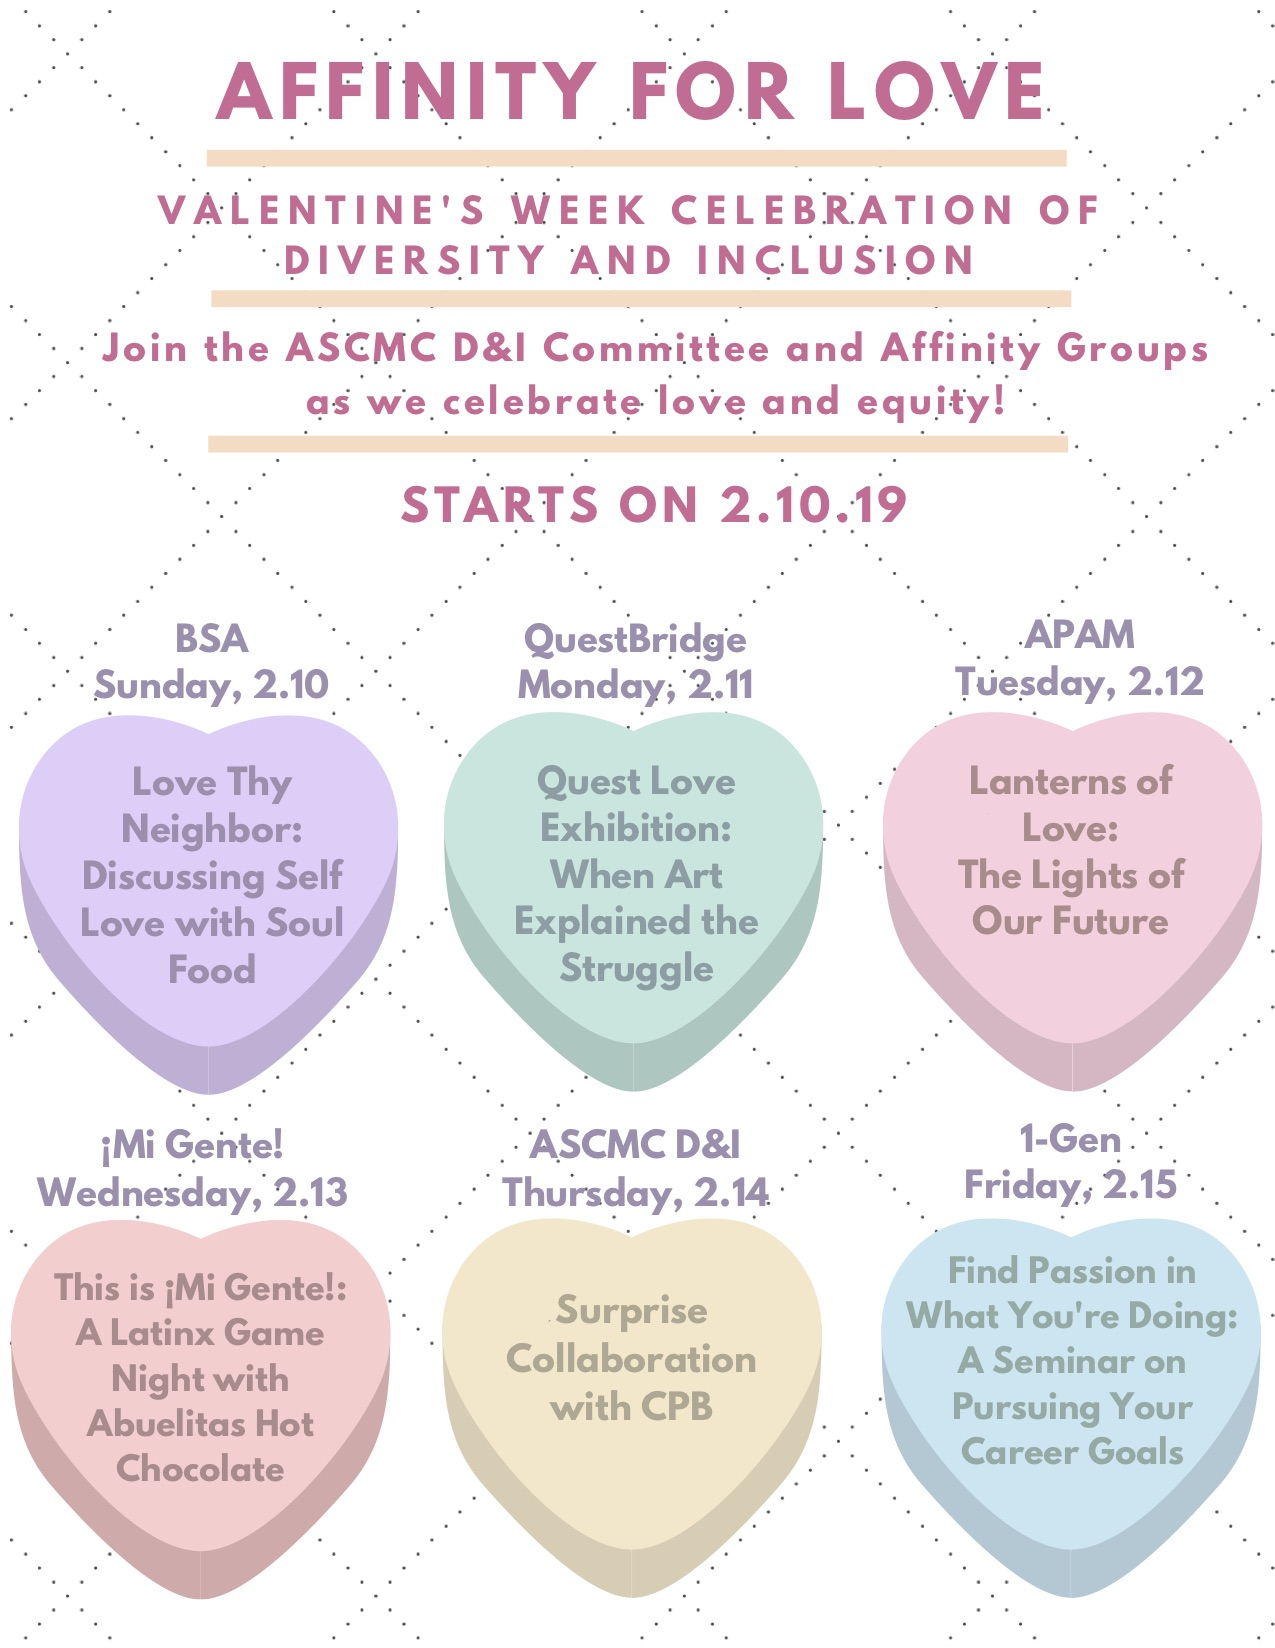 Flyer for Affinity for Love week sent by email to CMC students.